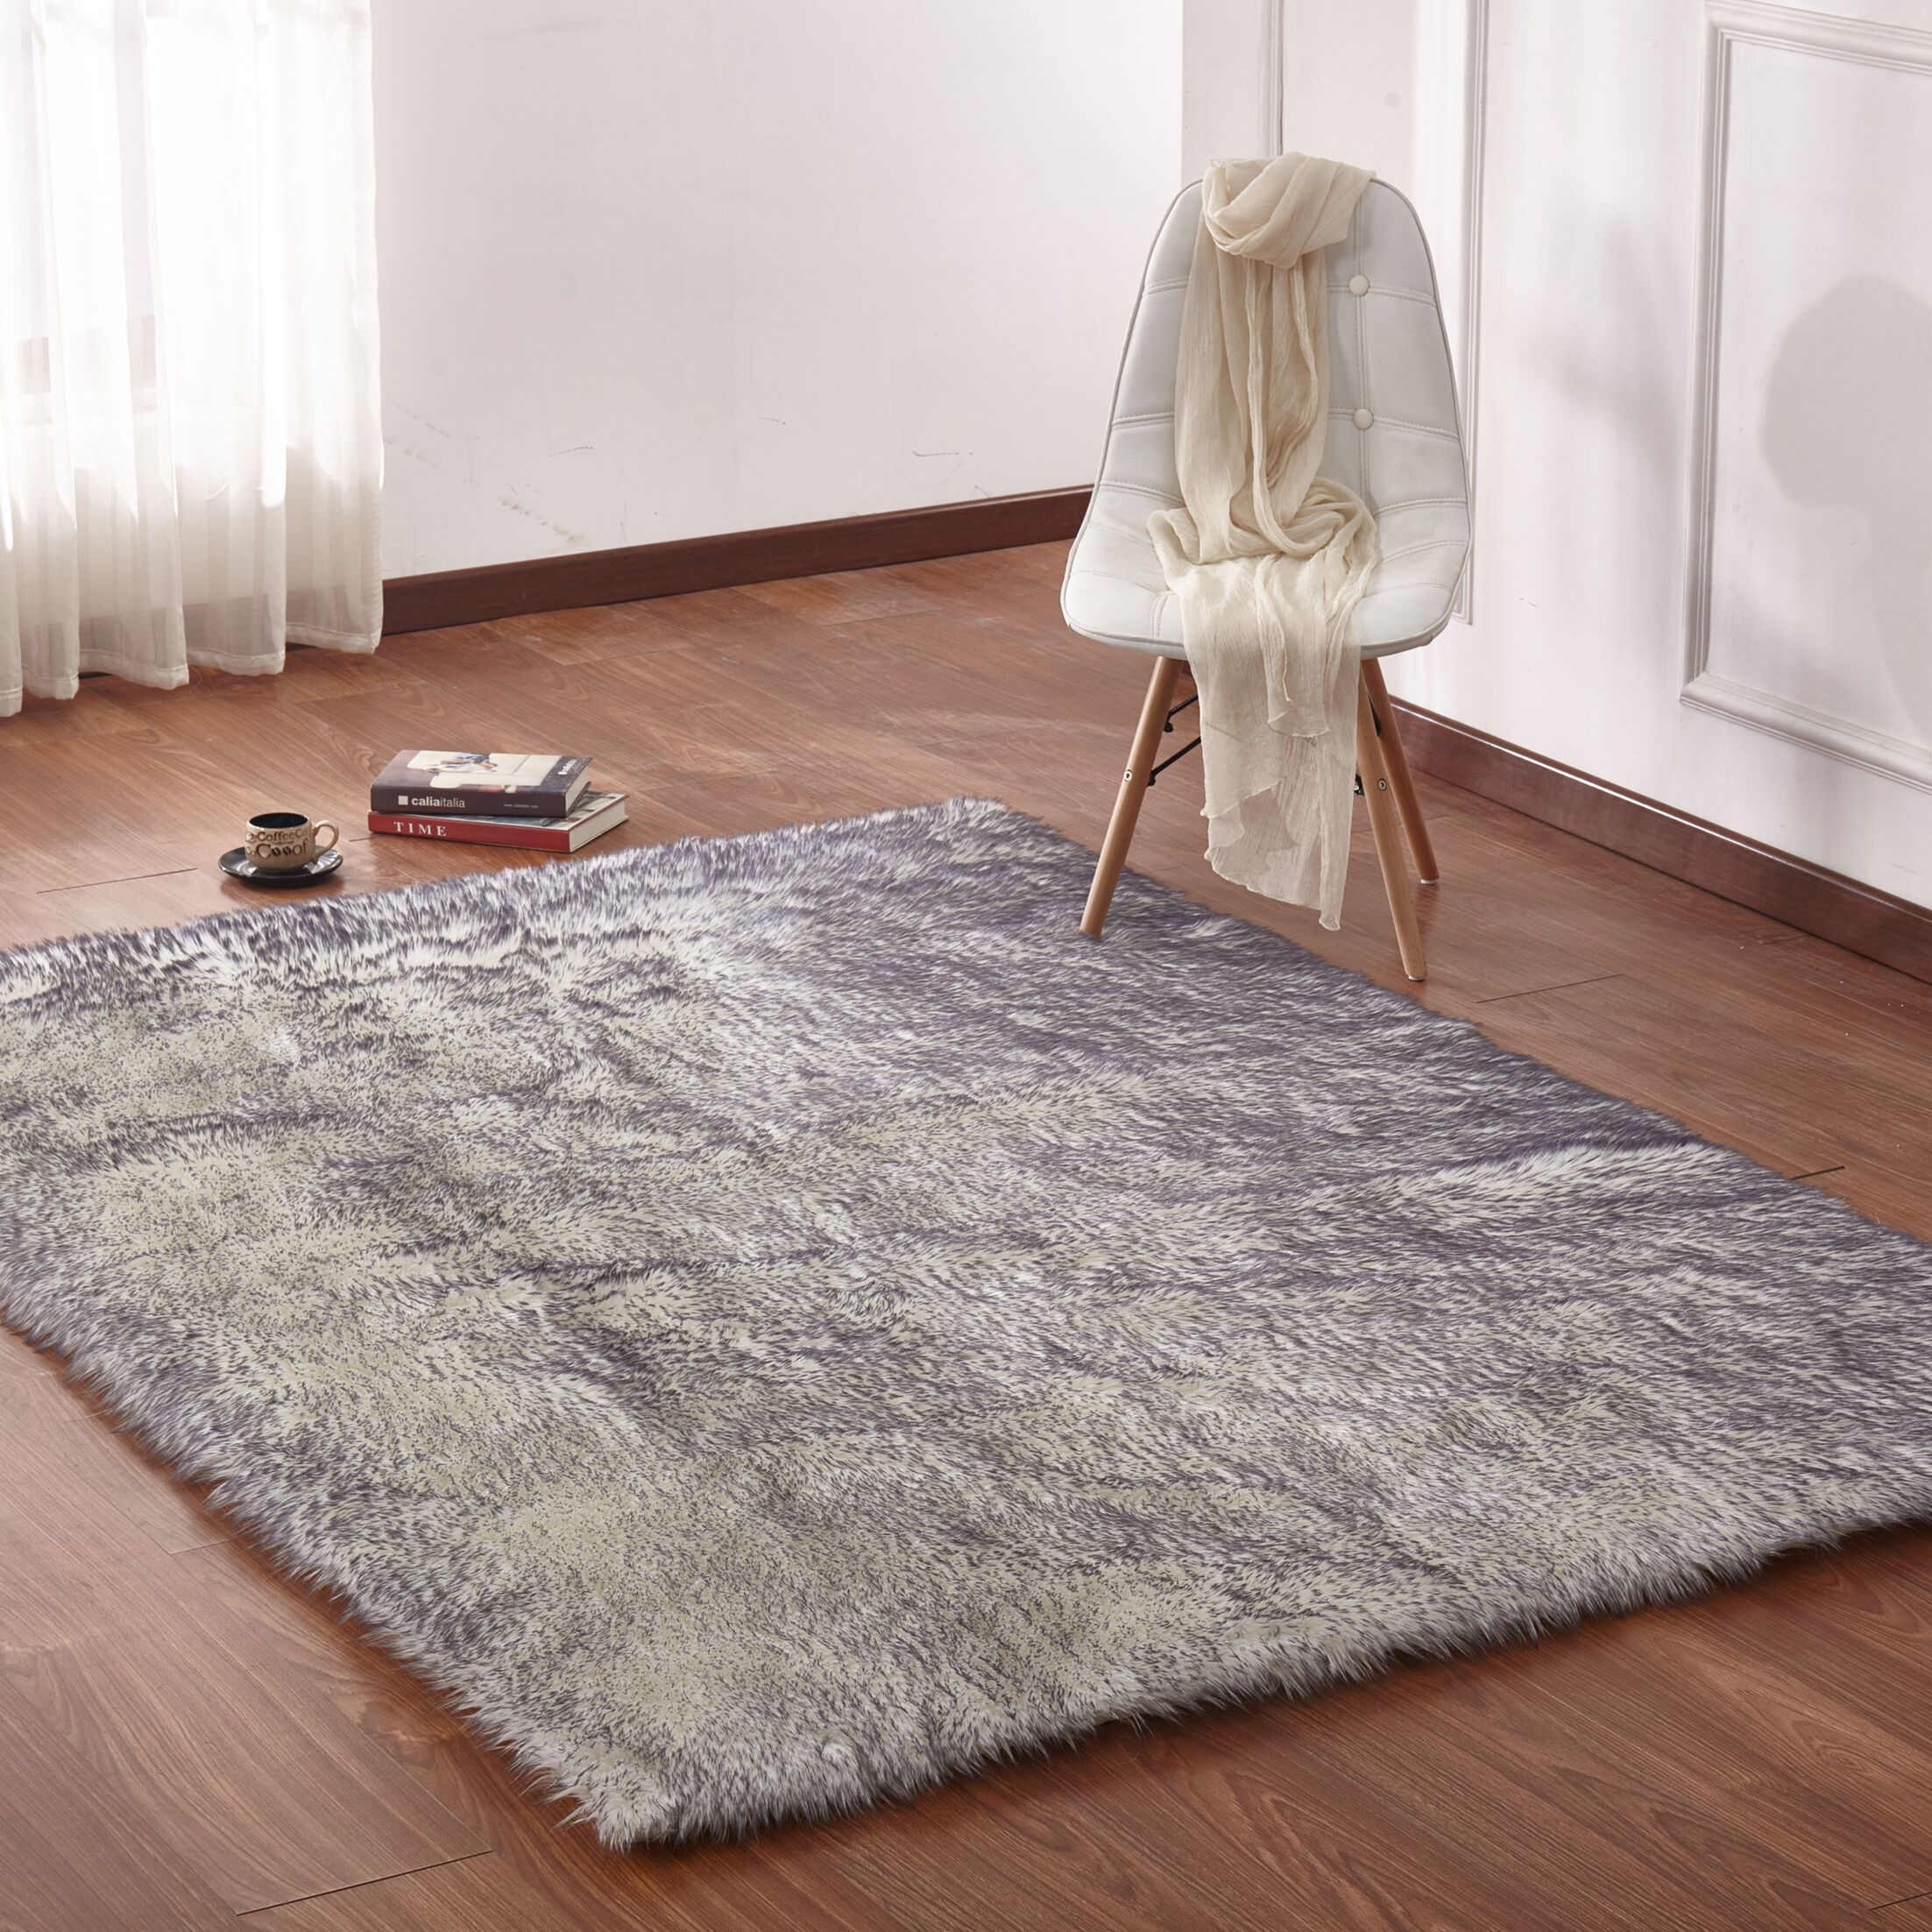 Leiker Hand-Woven Faux Fur White/Gray Area Rug Rug Size: Rectangle 7'6